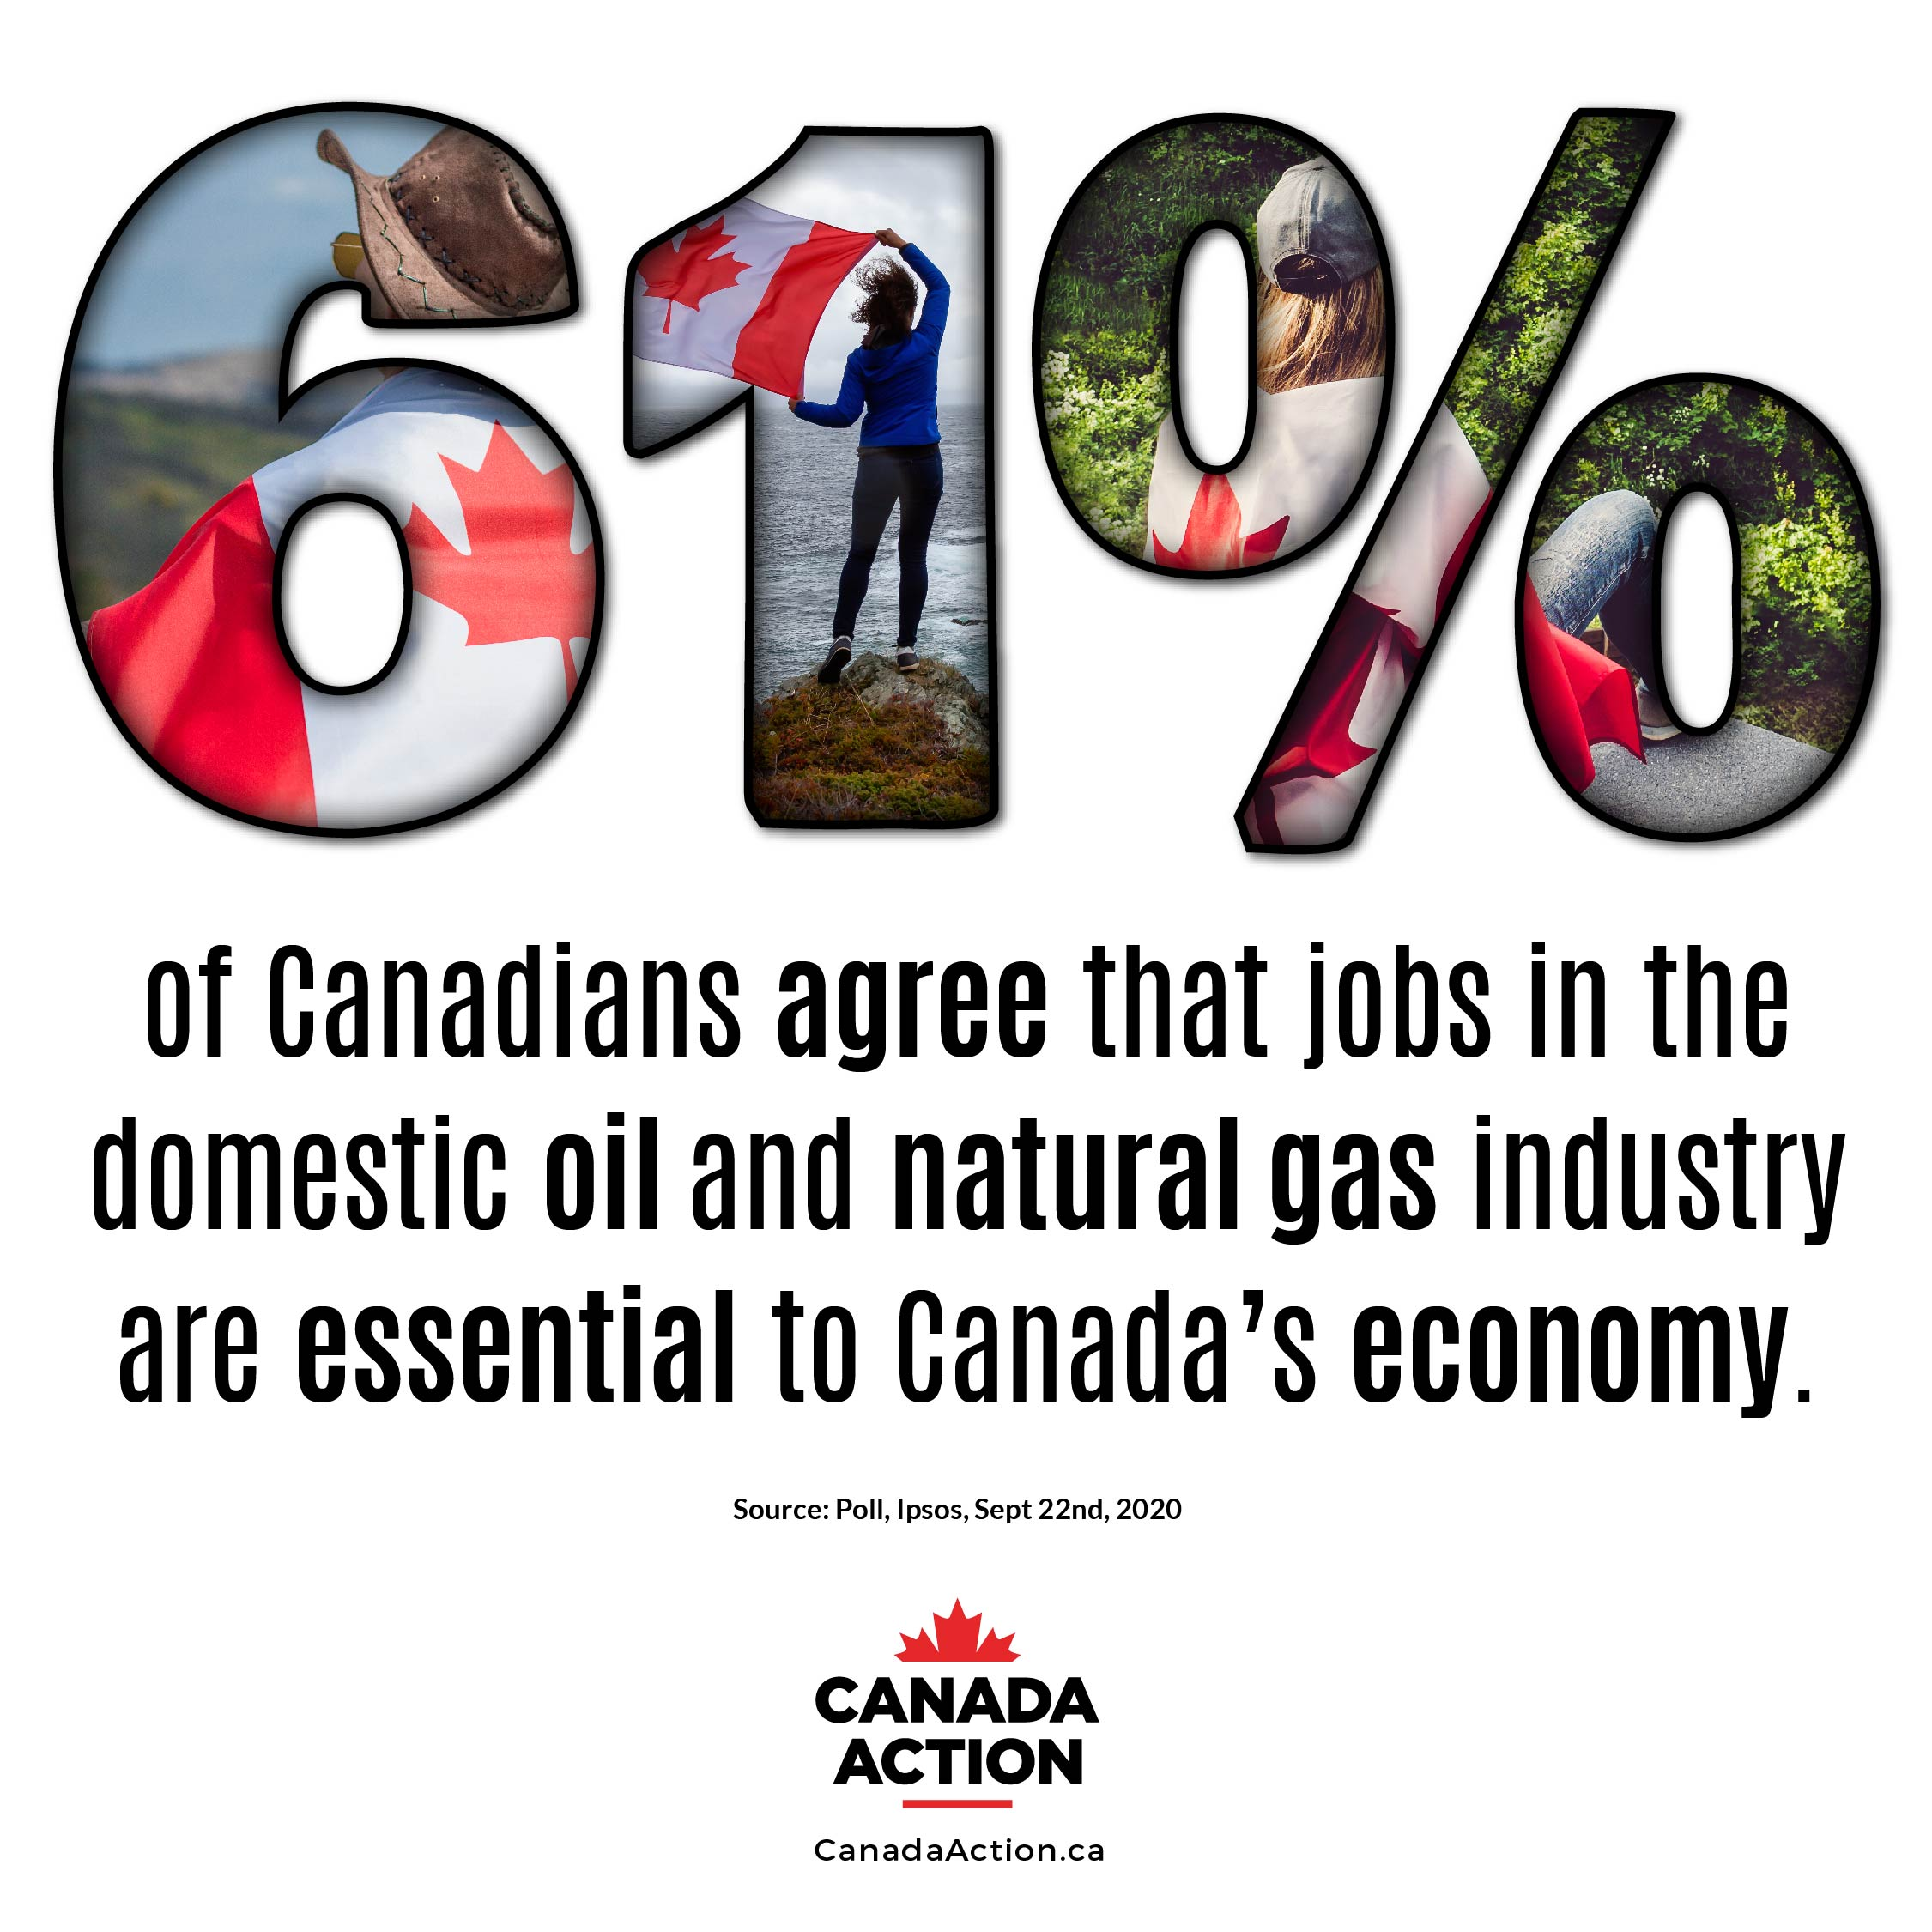 In Canada's COVID-19 Recovery, Natural Resources Should Lead the Way